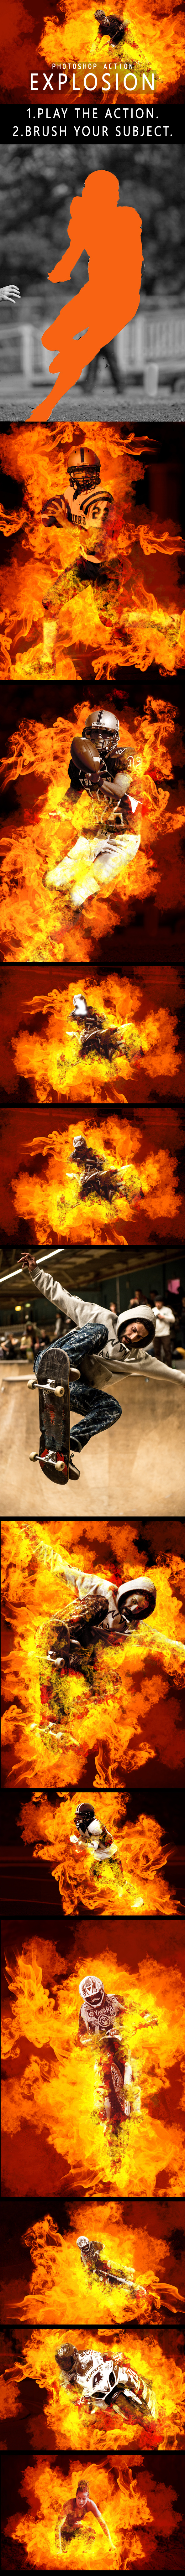 Explosion Photoshop Action - Photo Effects Actions